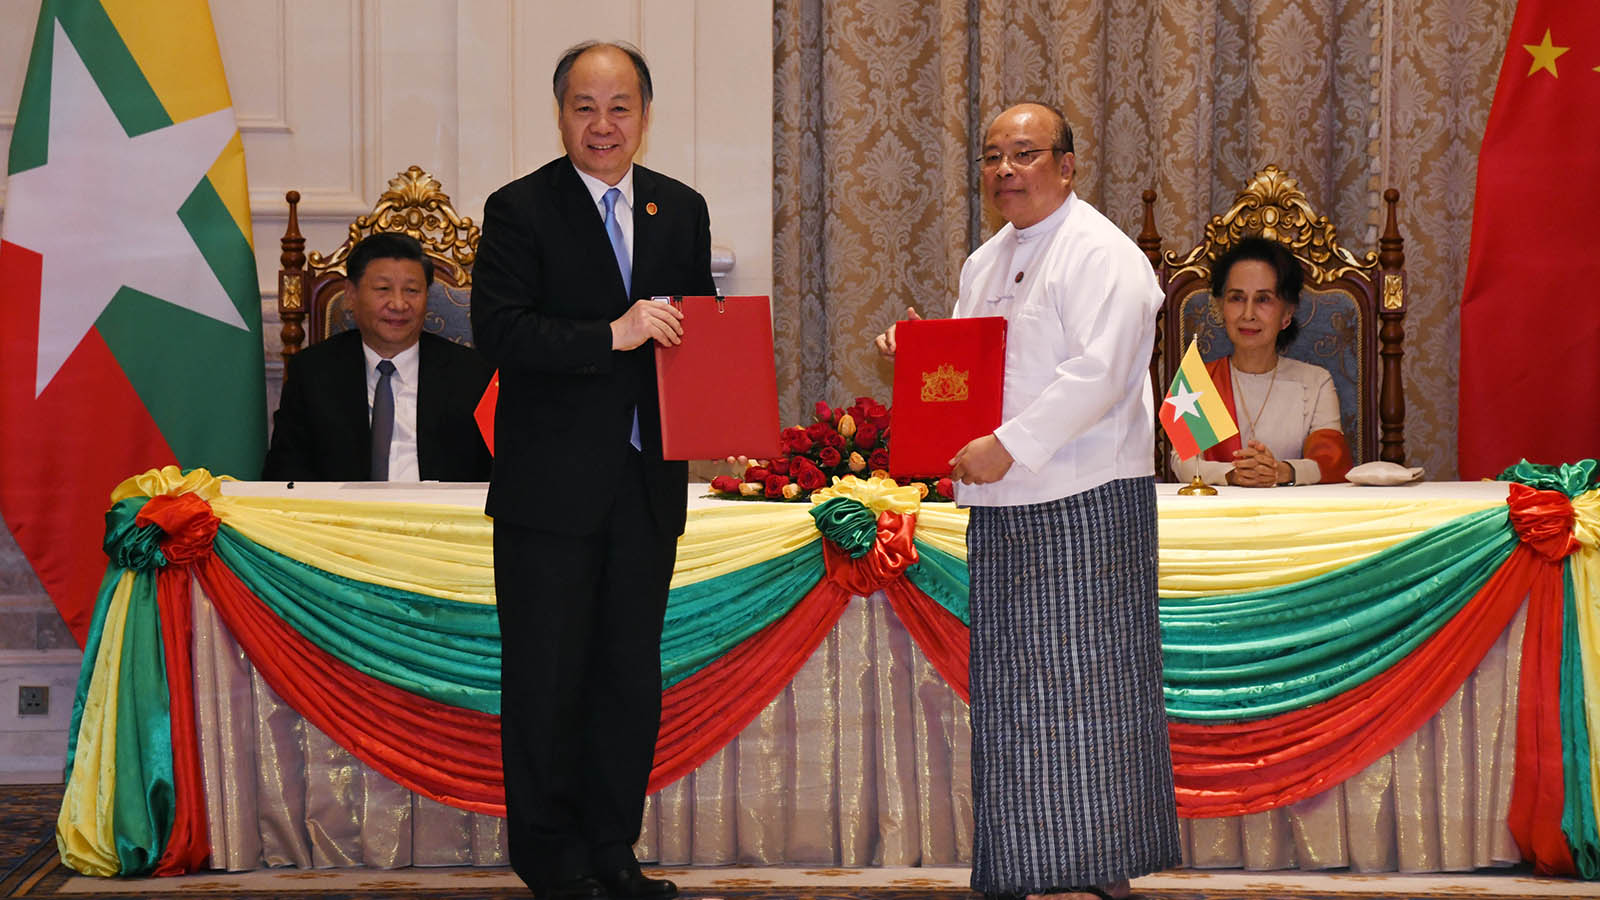 Union Minister U Thaung Tun and Chairman of CIDCA Mr. Wang Xiaotao, MoU exchange the letters on Human Resources Development Cooperation in the presence of State Counsellor Daw Aung San Suu Kyi and Chinese President Mr Xi Jinping.  Photo: MNA